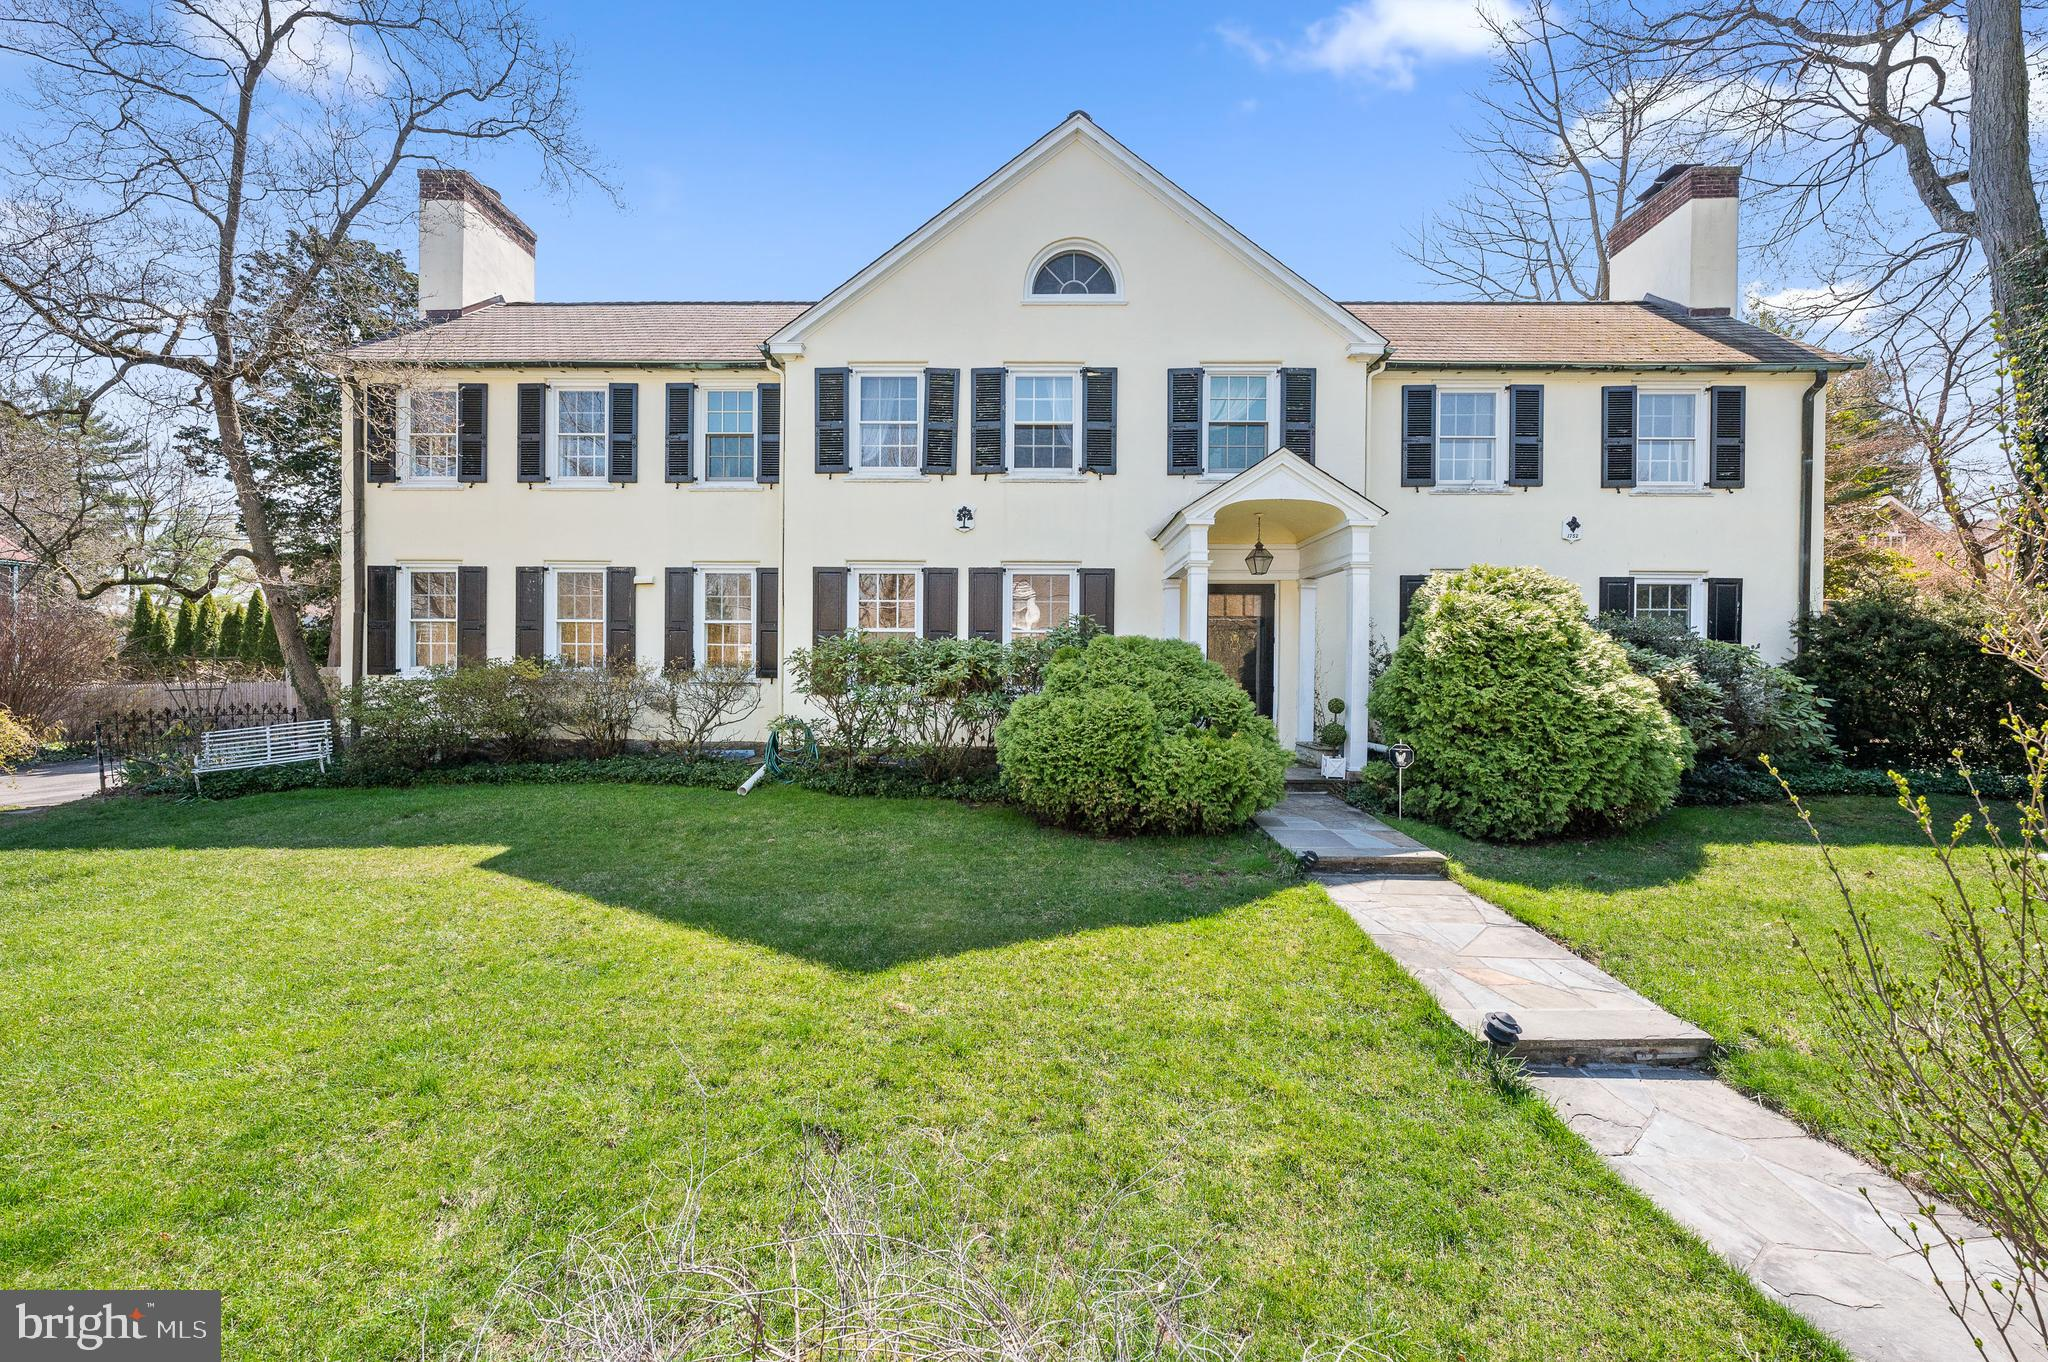 This Walk-to-Bryn Mawr 4+ Bedrooms and 3 full / 2 half bath circa 1920 Colonial is situated in a park-like setting on a Private Road with walkability you'll love:  1 block to R5 Septa Rail and Ashbridge Park and short walk to Tredici, La Colombe, Blue Mercury, Post Office, CVS and other downtown Bryn Mawr shops.  111 Ringwood is both stately and majestic as its set above a stone wall lined with red roses in the summer.  The stone wall proceeds up the driveway to the garage and side entrance and the stone staircase from the road leads you up to the Front Door Portico both hinting that you are in for something special.  When you step into the large Foyer, you immediately notice high ceilings and hardwood flooring throughout, hall closet and woodwork so desired in a Main Line home.  Off the Foyer is a grand sun-lit Living Room with built-in book cases, decorative fireplace, large windows, and two sets of floor-to-ceiling French Doors that open onto the stone terrace creating the perfect place for family gatherings.  The Formal Dining Room has french glass doors that lend privacy for entertaining thru late hours.  Morning coffee or your favorite show can be enjoyed in the Family / Sun Room that offers views and access to the backyard and stone patio and hosts the main floor powder room. The updated Eat-in-Kitchen is dreamy with white custom cabinetry, granite countertops, Subzero Refrigerator, large DCS range with Double Oven, Wolf Convection/Microwave Oven, KitchenAid Dishwasher, main sink over looking the front yard, and prep-sink near range.  The Kitchen also offers walk-in Pantry, bar stool seating for 4 and table seating for 6 people.  Bringing in groceries is easy thru side entrance.  Ascend the turned staircase to Second Floor where you'll find a large Primary Bedroom En-Suite with two closets, decorative fireplace and a remodeled Full Bath with glass shower doors, heated towel rack and fog-less vanity mirror.  The Second and Third Bedrooms have dual access to th